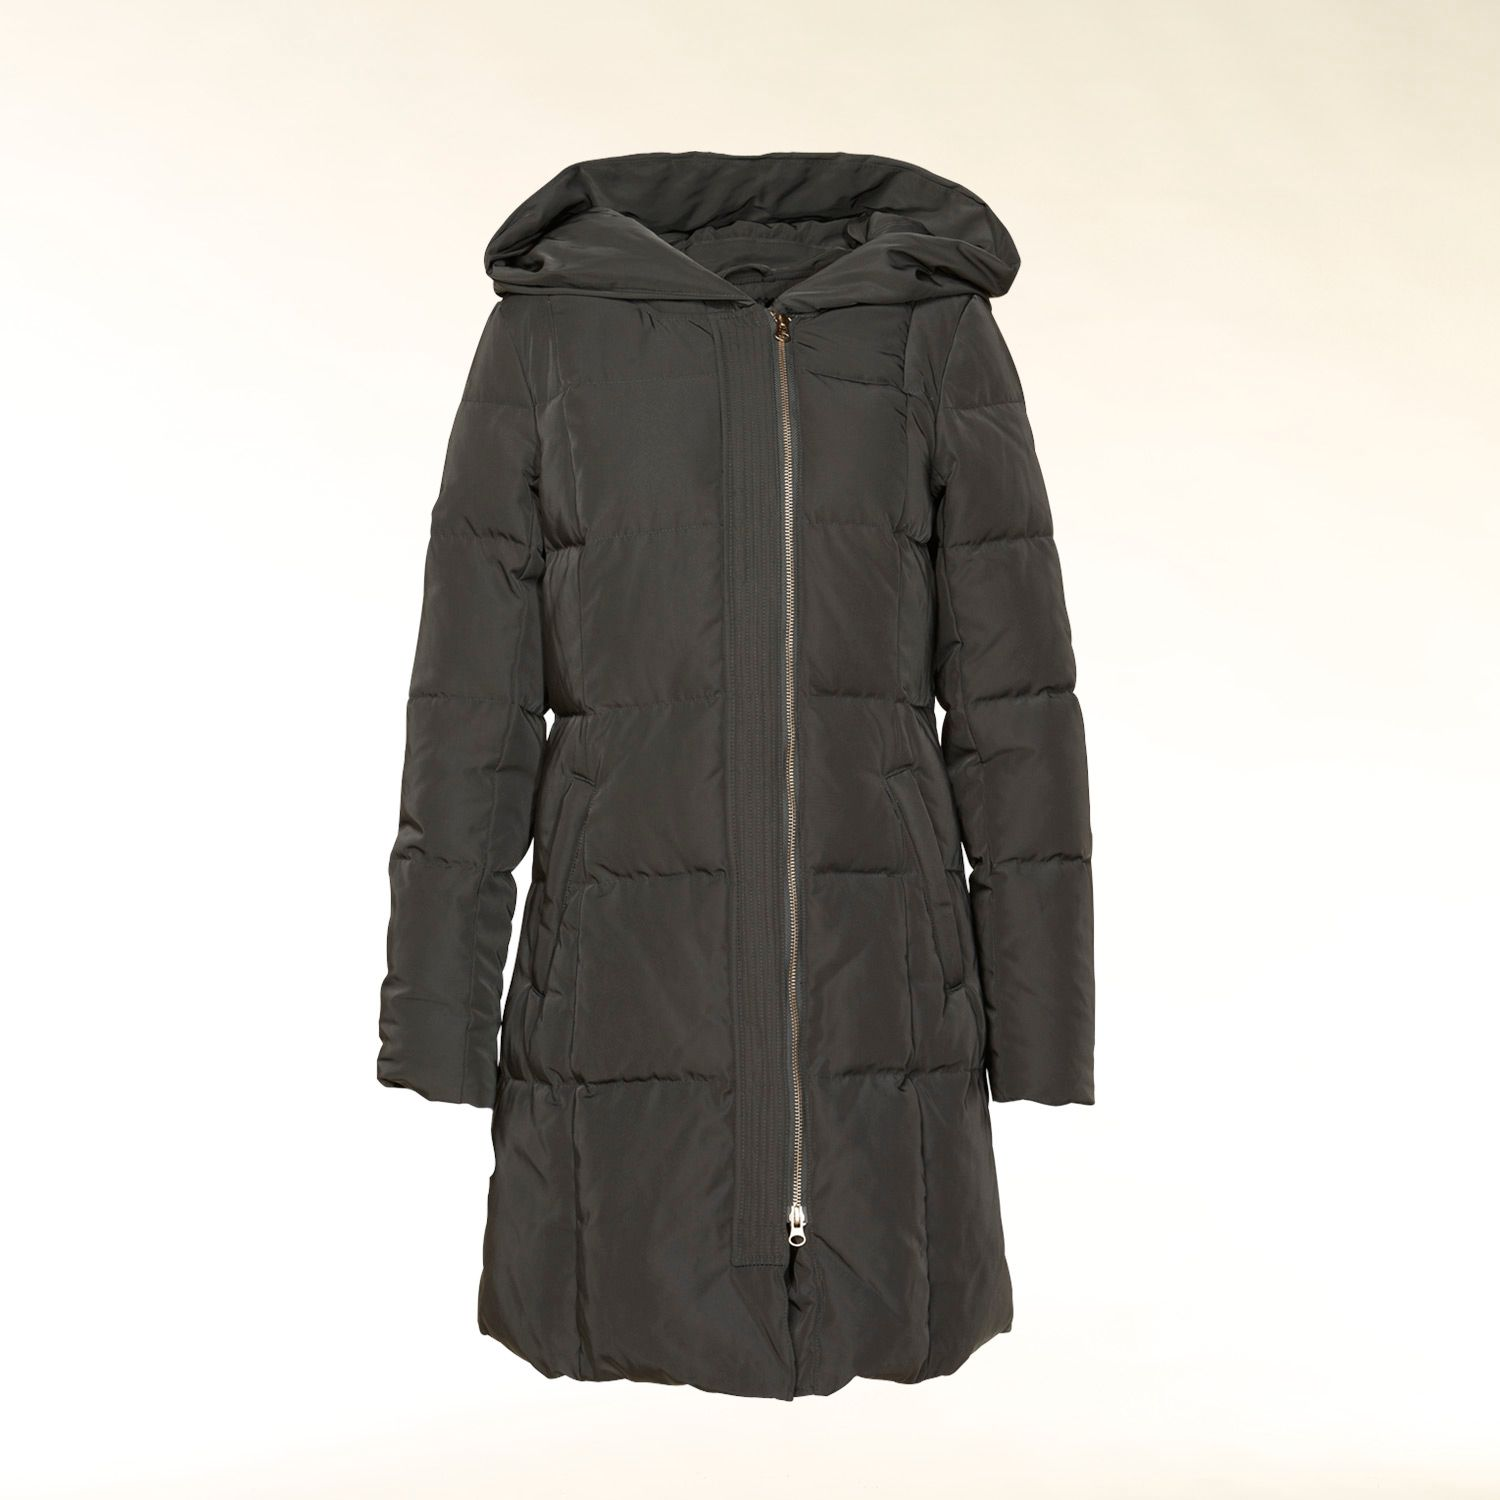 Asymmetrical zip hooded coat